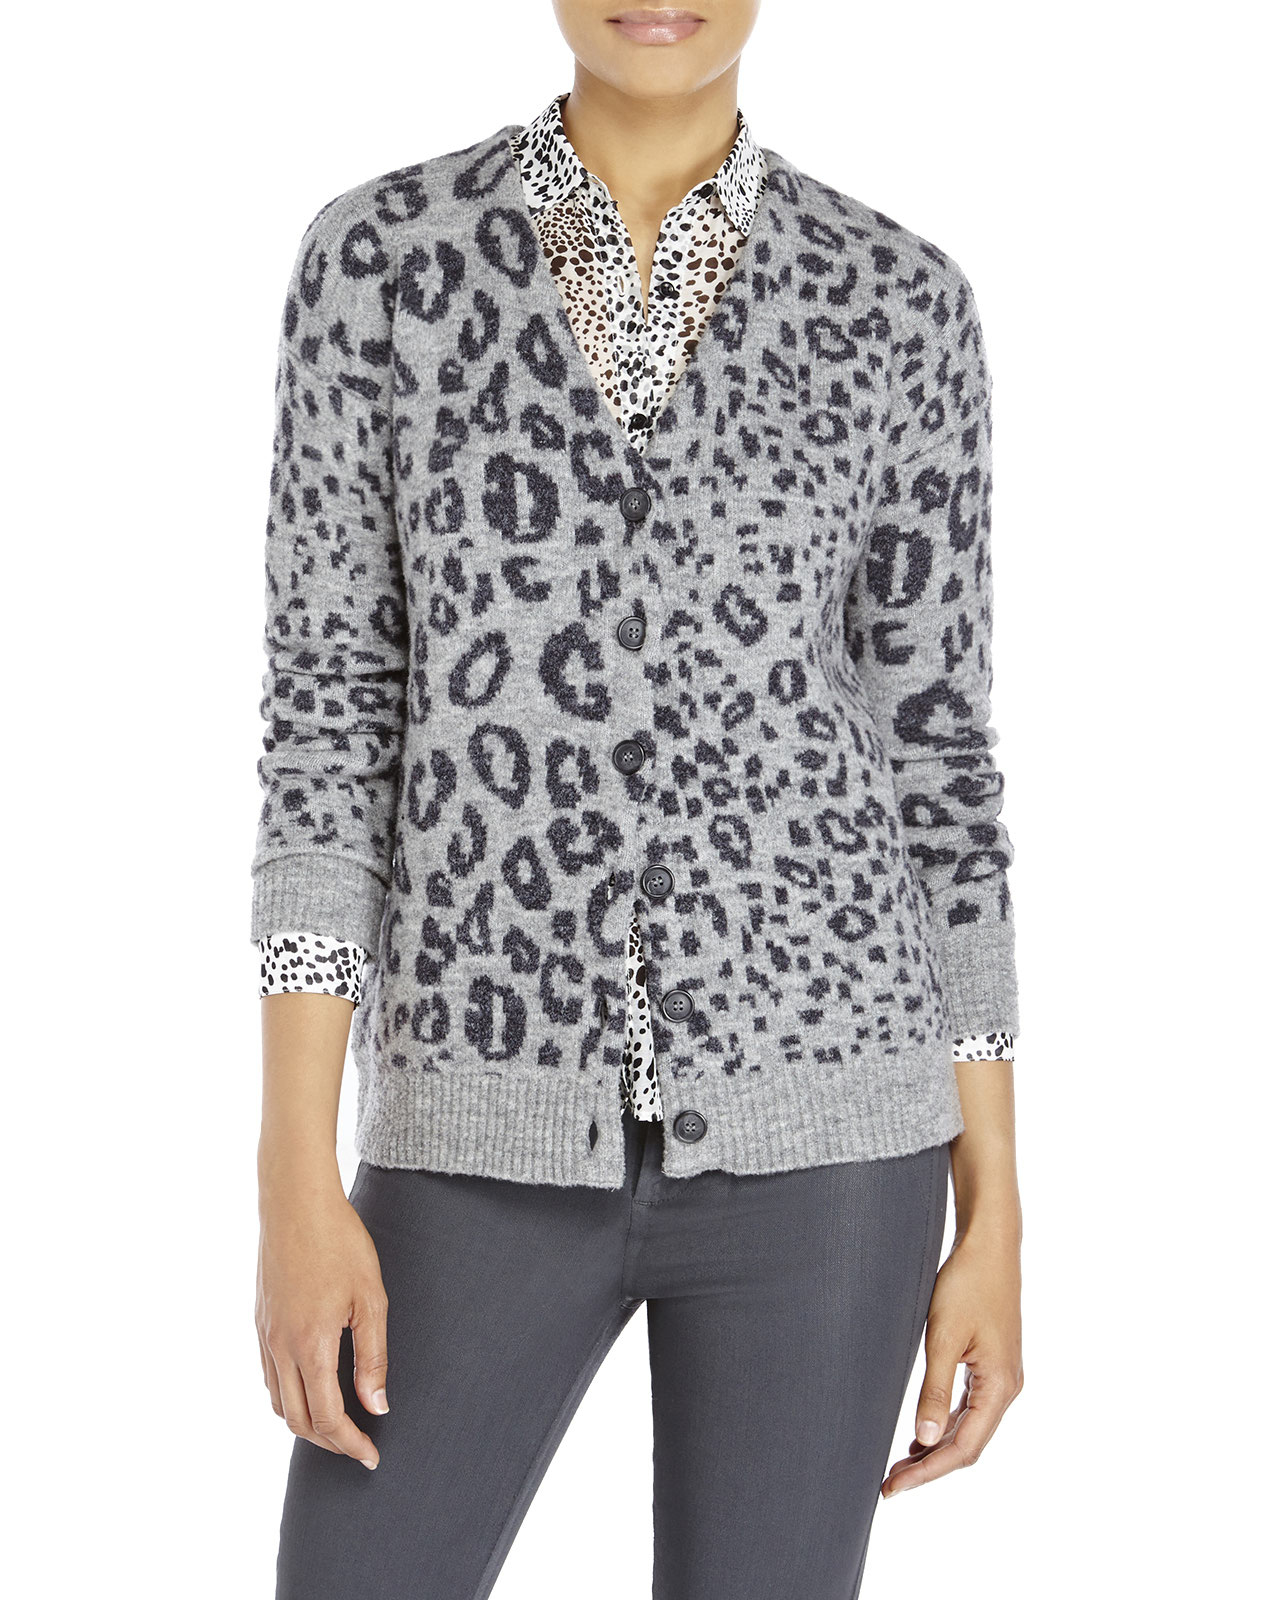 The kooples Leopard Print Cardigan in Gray | Lyst